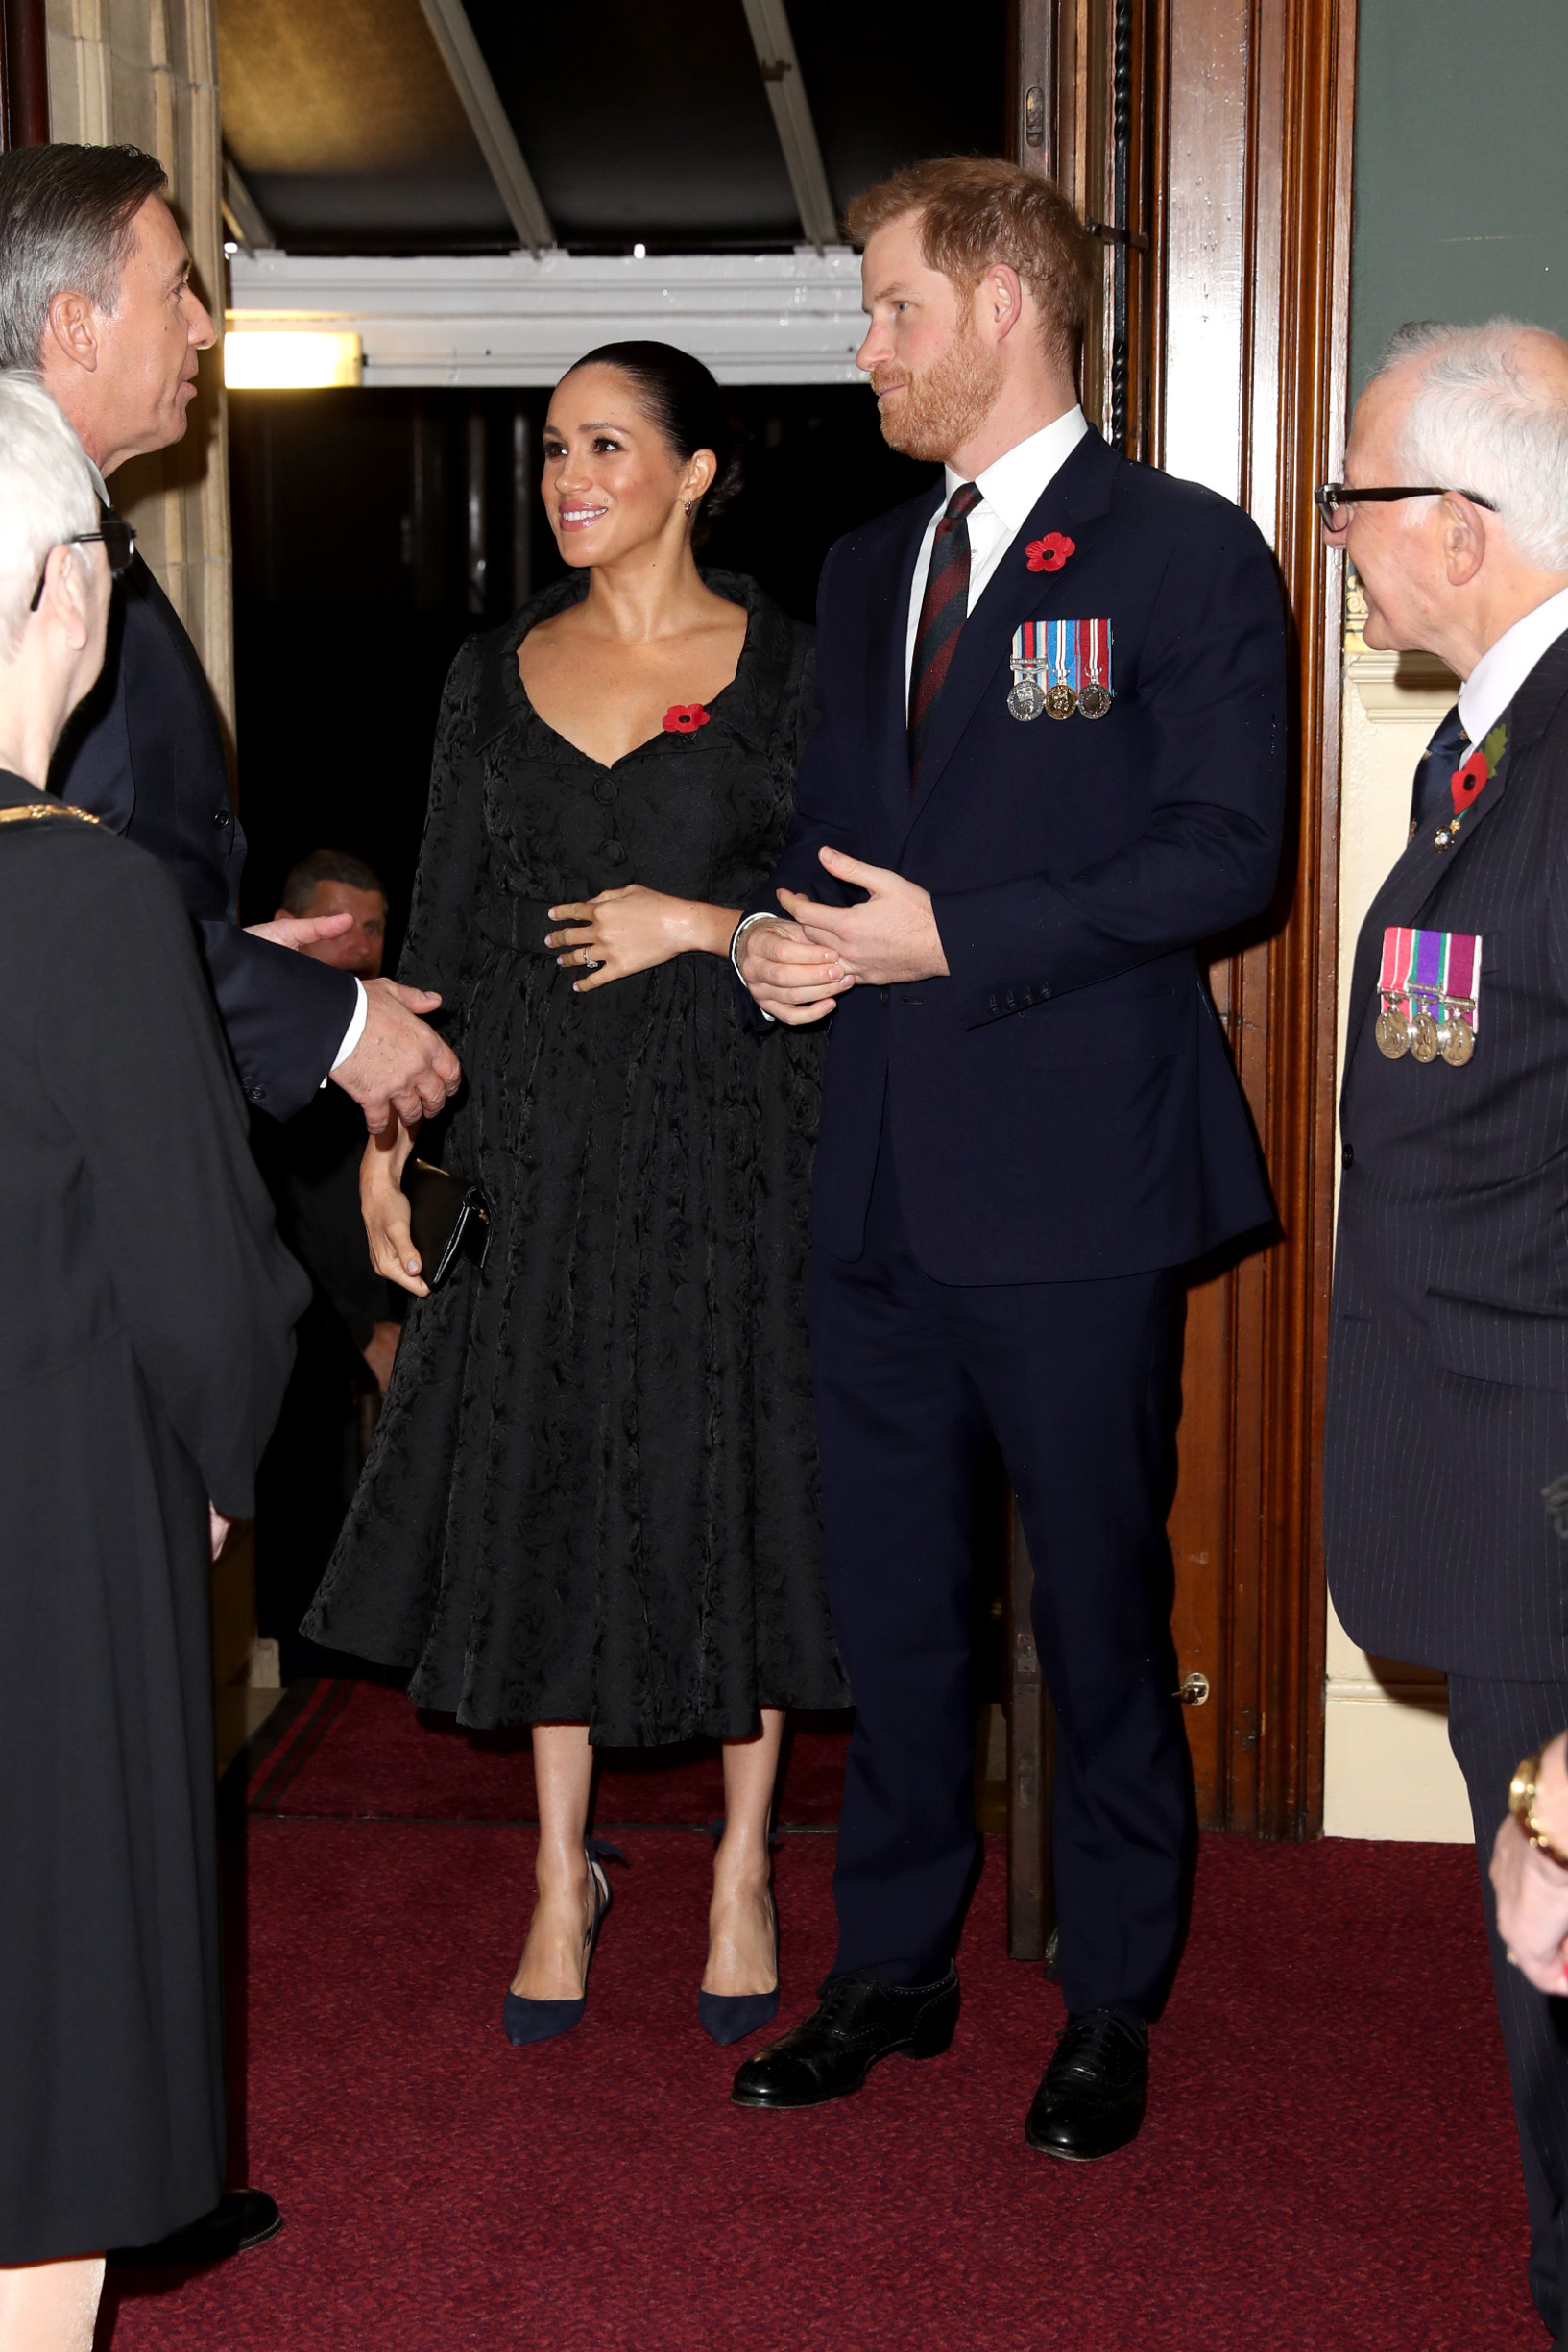 LONDON, ENGLAND - NOVEMBER 09: Meghan, Duchess of Sussex and Prince Harry, Duke of Sussex attend the annual Royal British Legion Festival of Remembrance at the Royal Albert Hall on November 09, 2019 in London, England. (Photo by Chris Jackson/- WPA Pool/Getty Images)